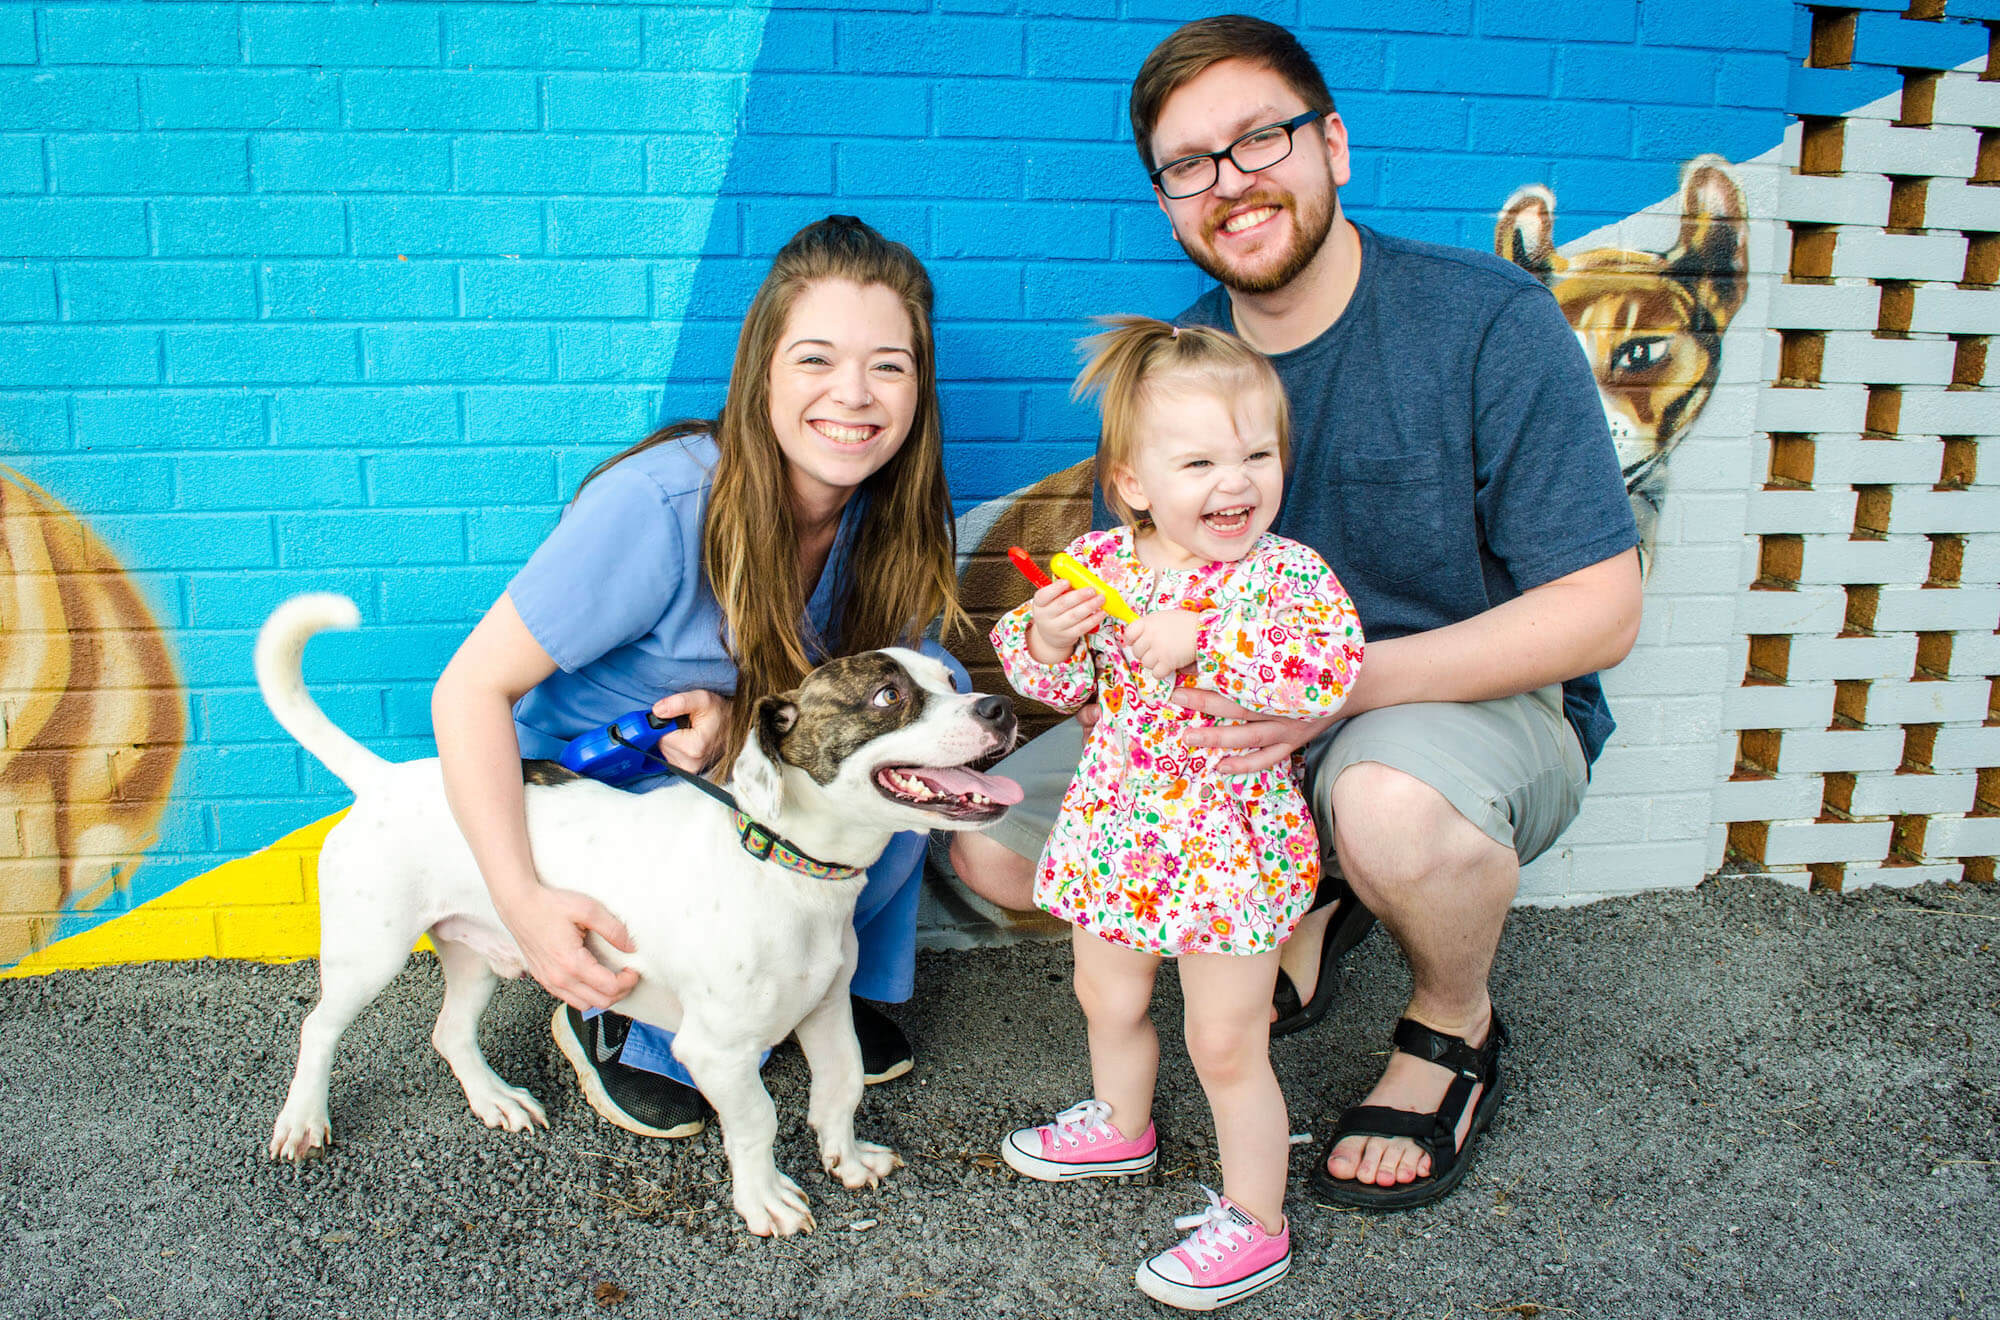 Leigh Ann, a maker volunteer, took beautiful photos of the Chattaneuter staff. Pictured are a couple with their daughter and dog standing in front of the Chattaneuter mural.